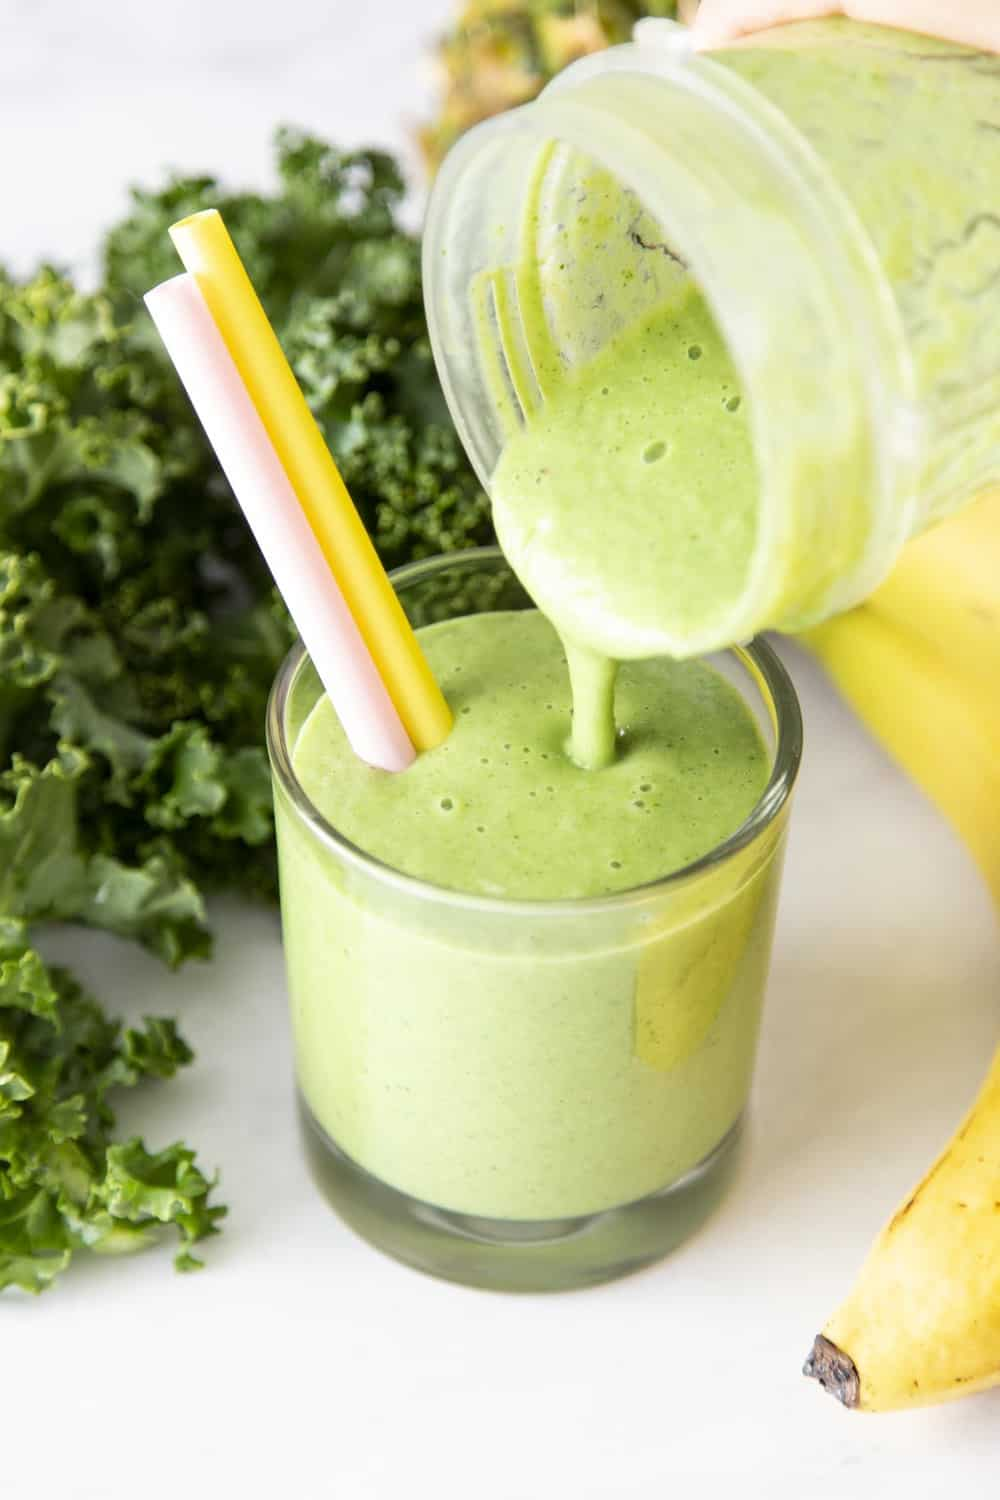 Kale smoothie being poured into a glass